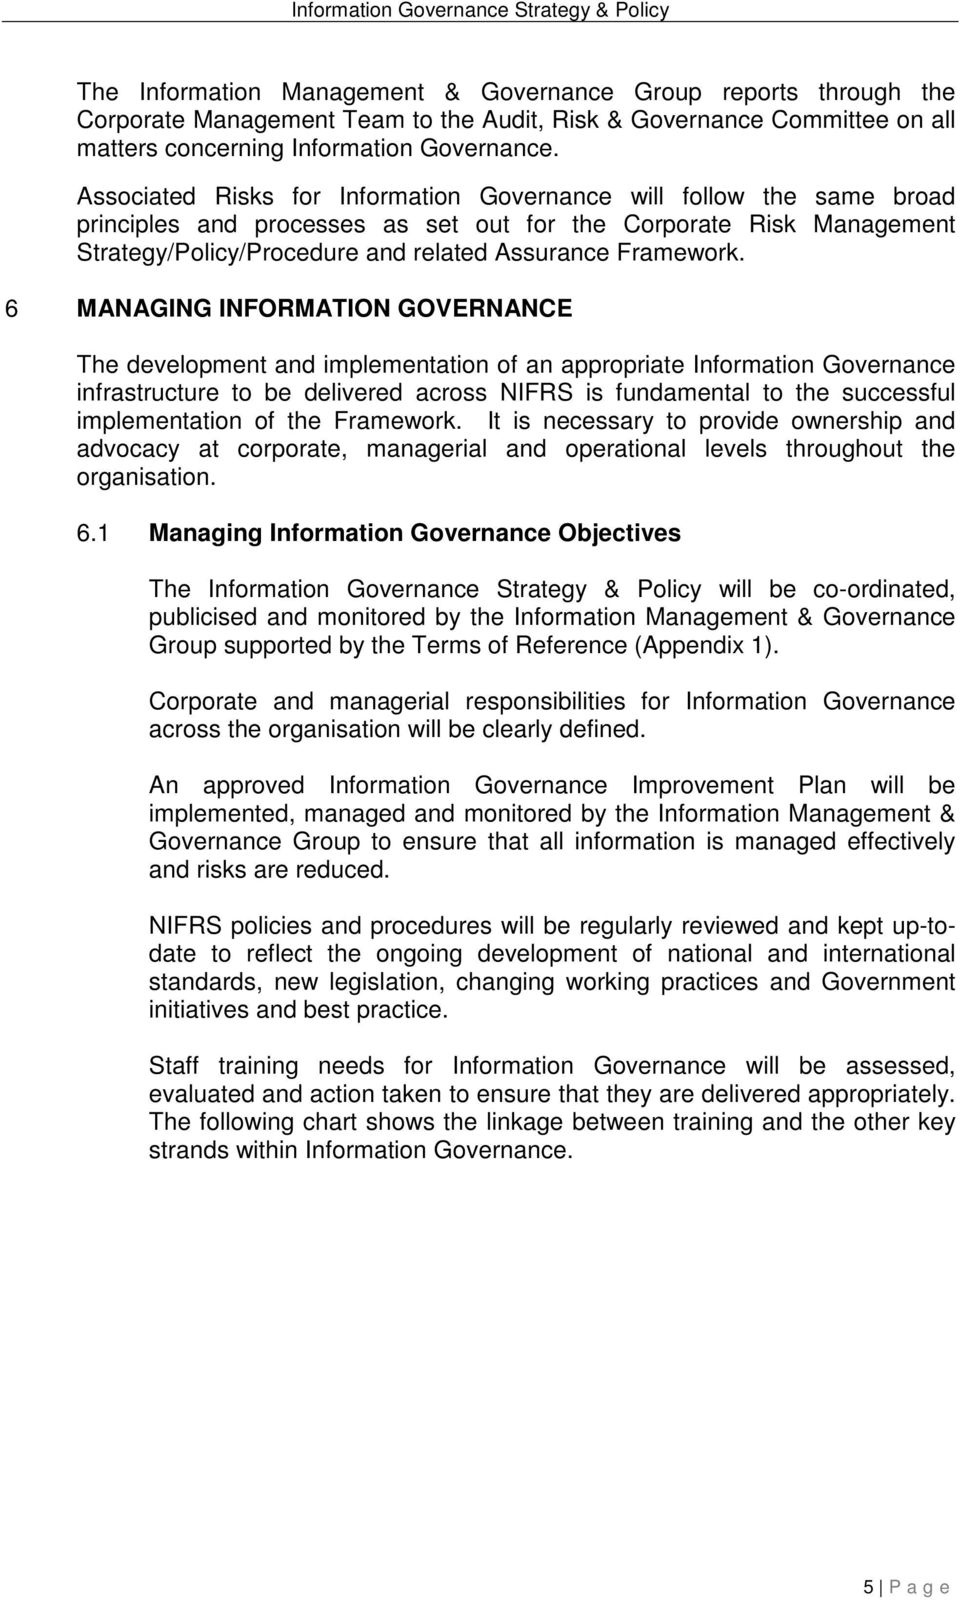 6 MANAGING INFORMATION GOVERNANCE The development and implementation of an appropriate Information Governance infrastructure to be delivered across NIFRS is fundamental to the successful